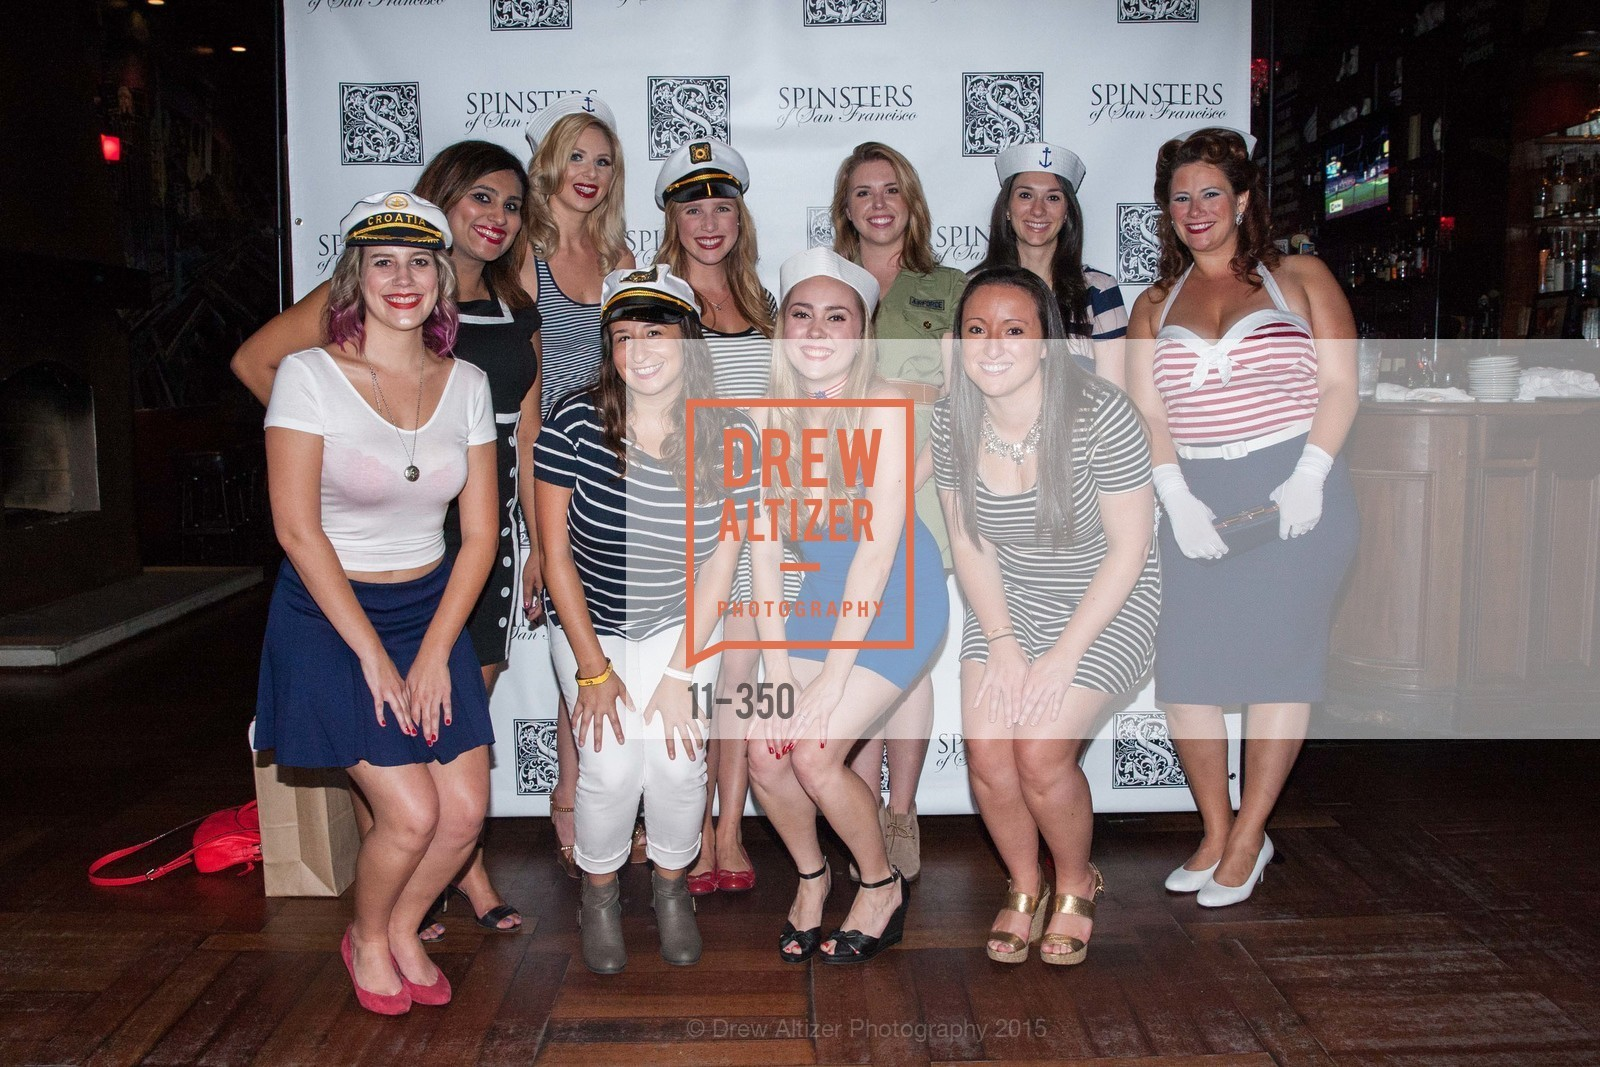 Jeanette LeFevre, Teesta Kaur, Kelly Mulcahy, Lauren Birnbaum, Courtney Costello, Shannon Meagher, Sara Moynihan, Genevieve Meyers, Xanadu Bruggers, Alex Black, Spinsters of San Francisco Presents: Fleet or Flight, Mayes Oyster House. 1233 Polk St, October 9th, 2015,Drew Altizer, Drew Altizer Photography, full-service agency, private events, San Francisco photographer, photographer california